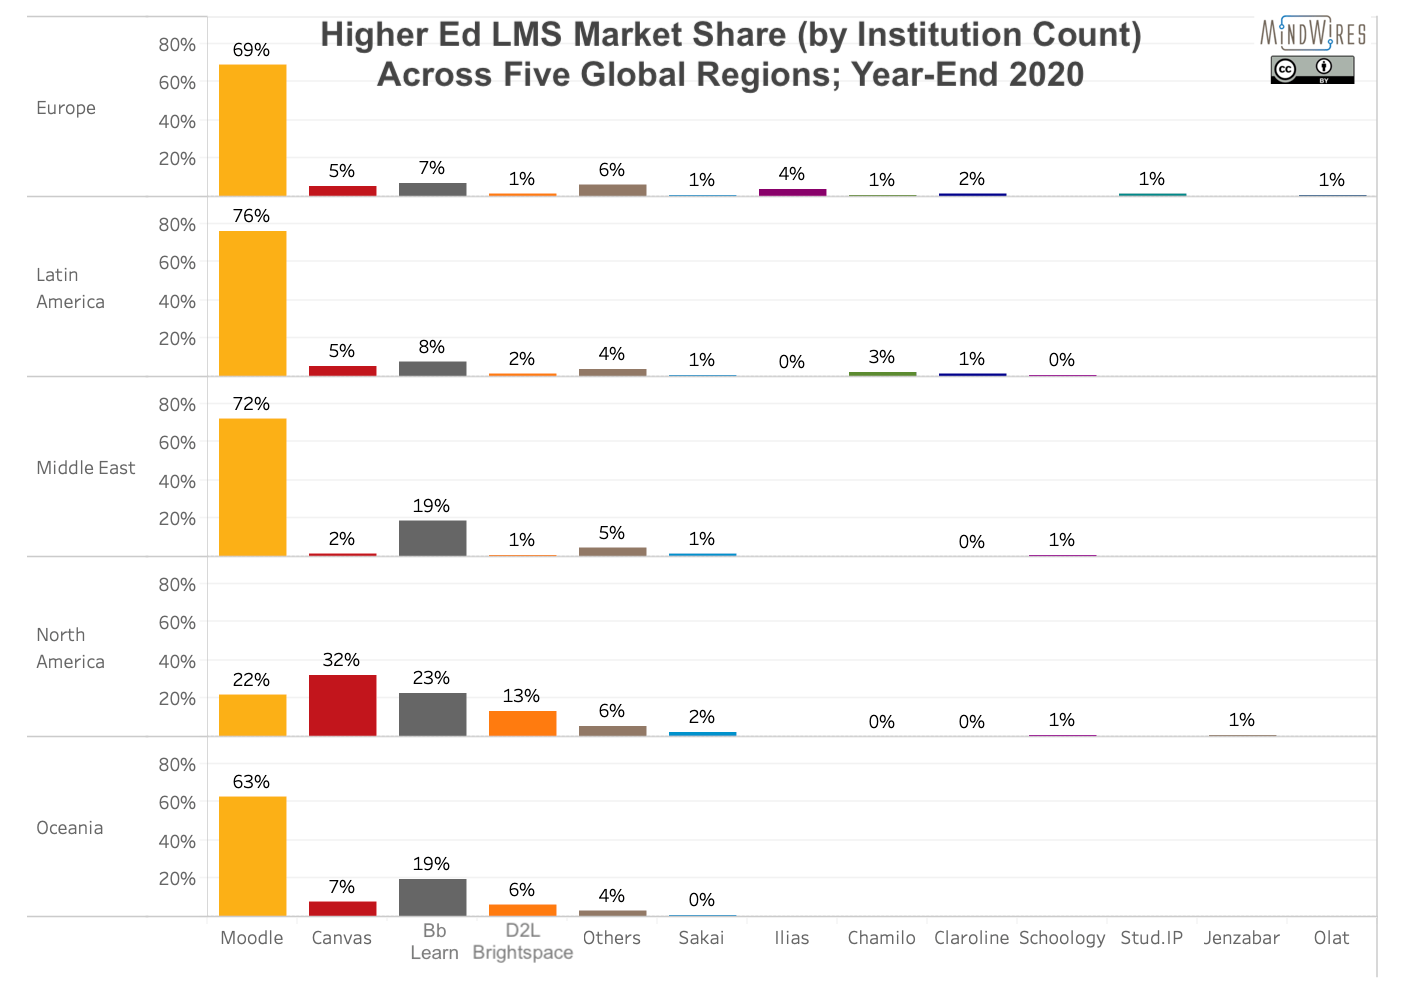 Higher ed LMS market share by institution count across five global regions